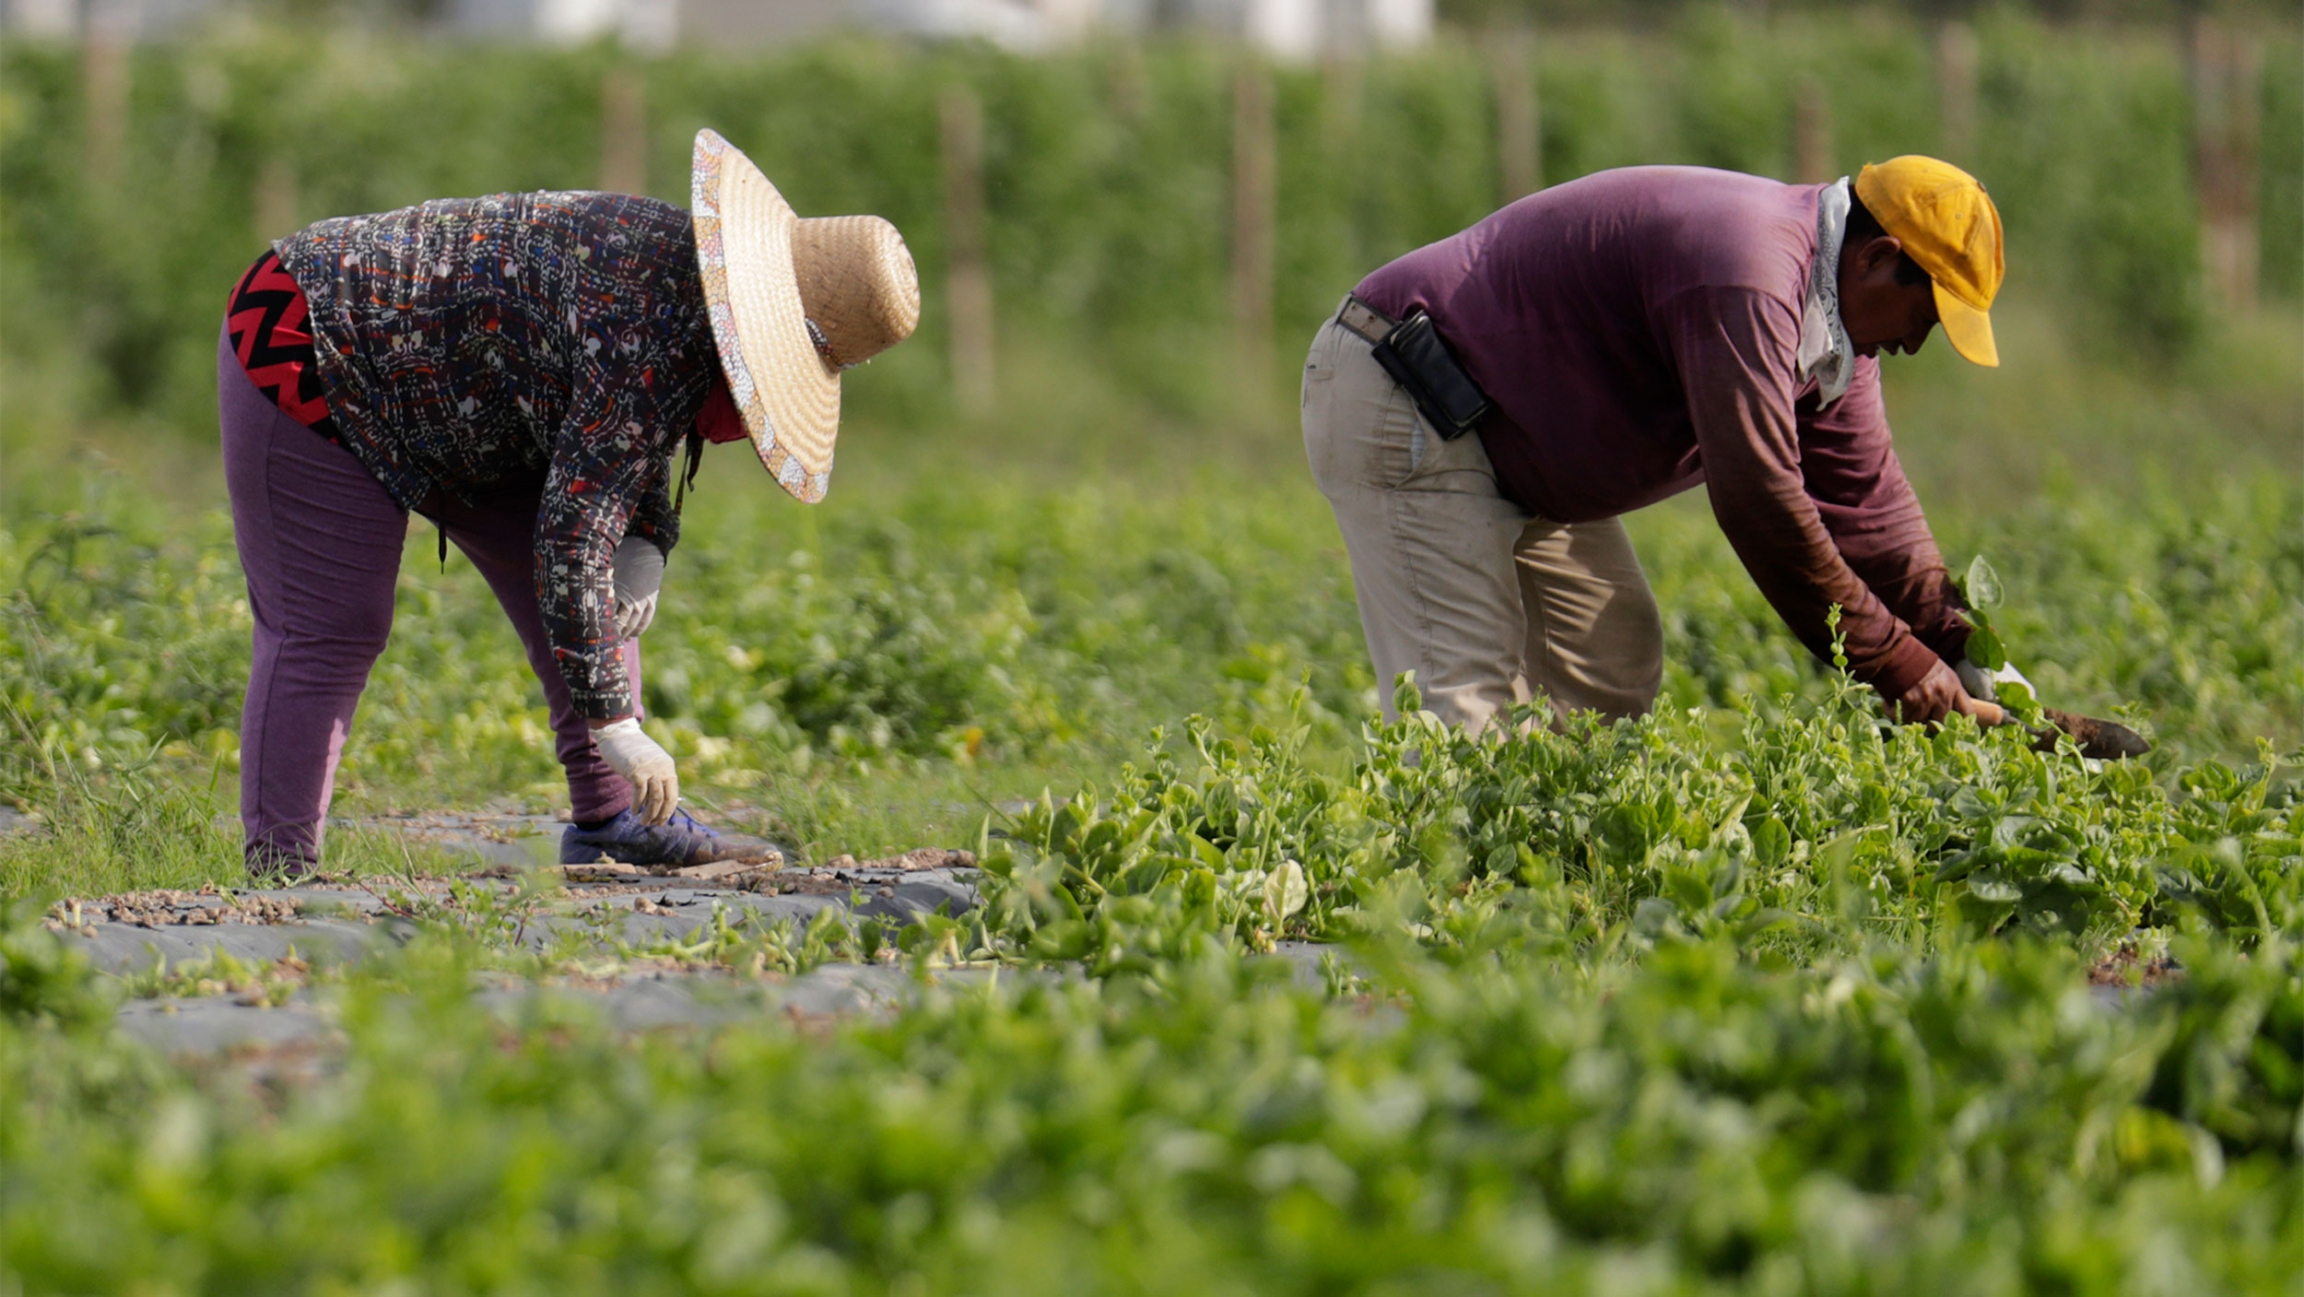 Farmworkers wearing hats gather spinach from a field.